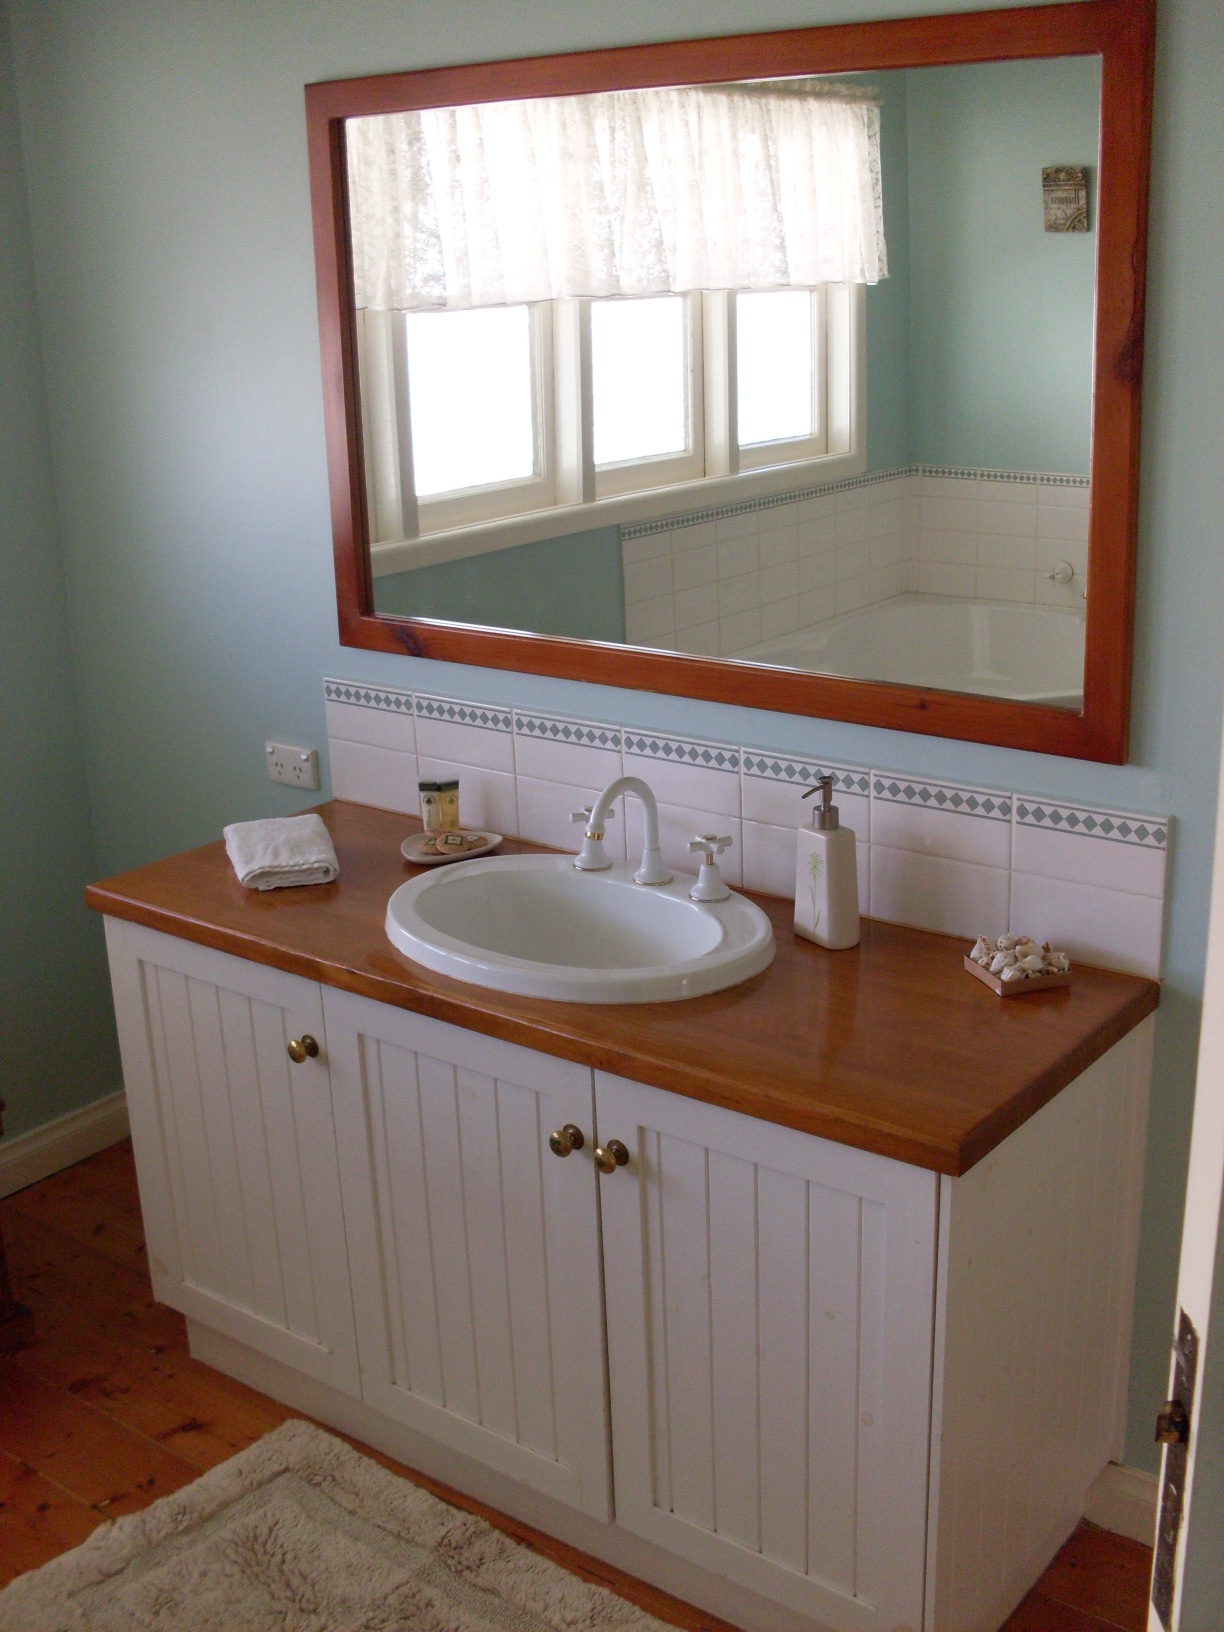 Bathroom at Paringa Cottage, Echuca - Pet Friendly gallery image